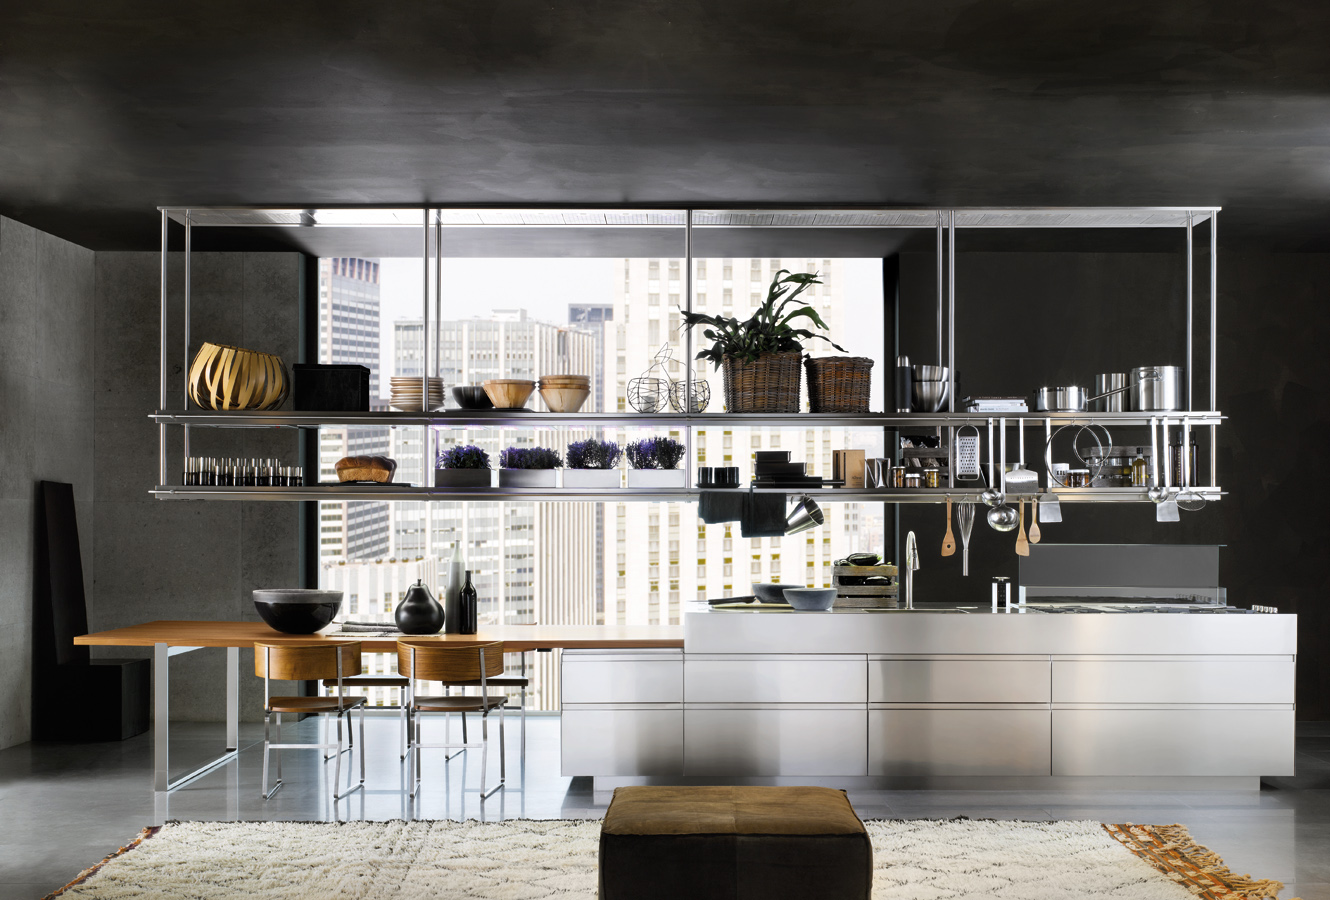 Organized Kitchen Space Stainless Steel Racks - Modern italian kitchen design from arclinea